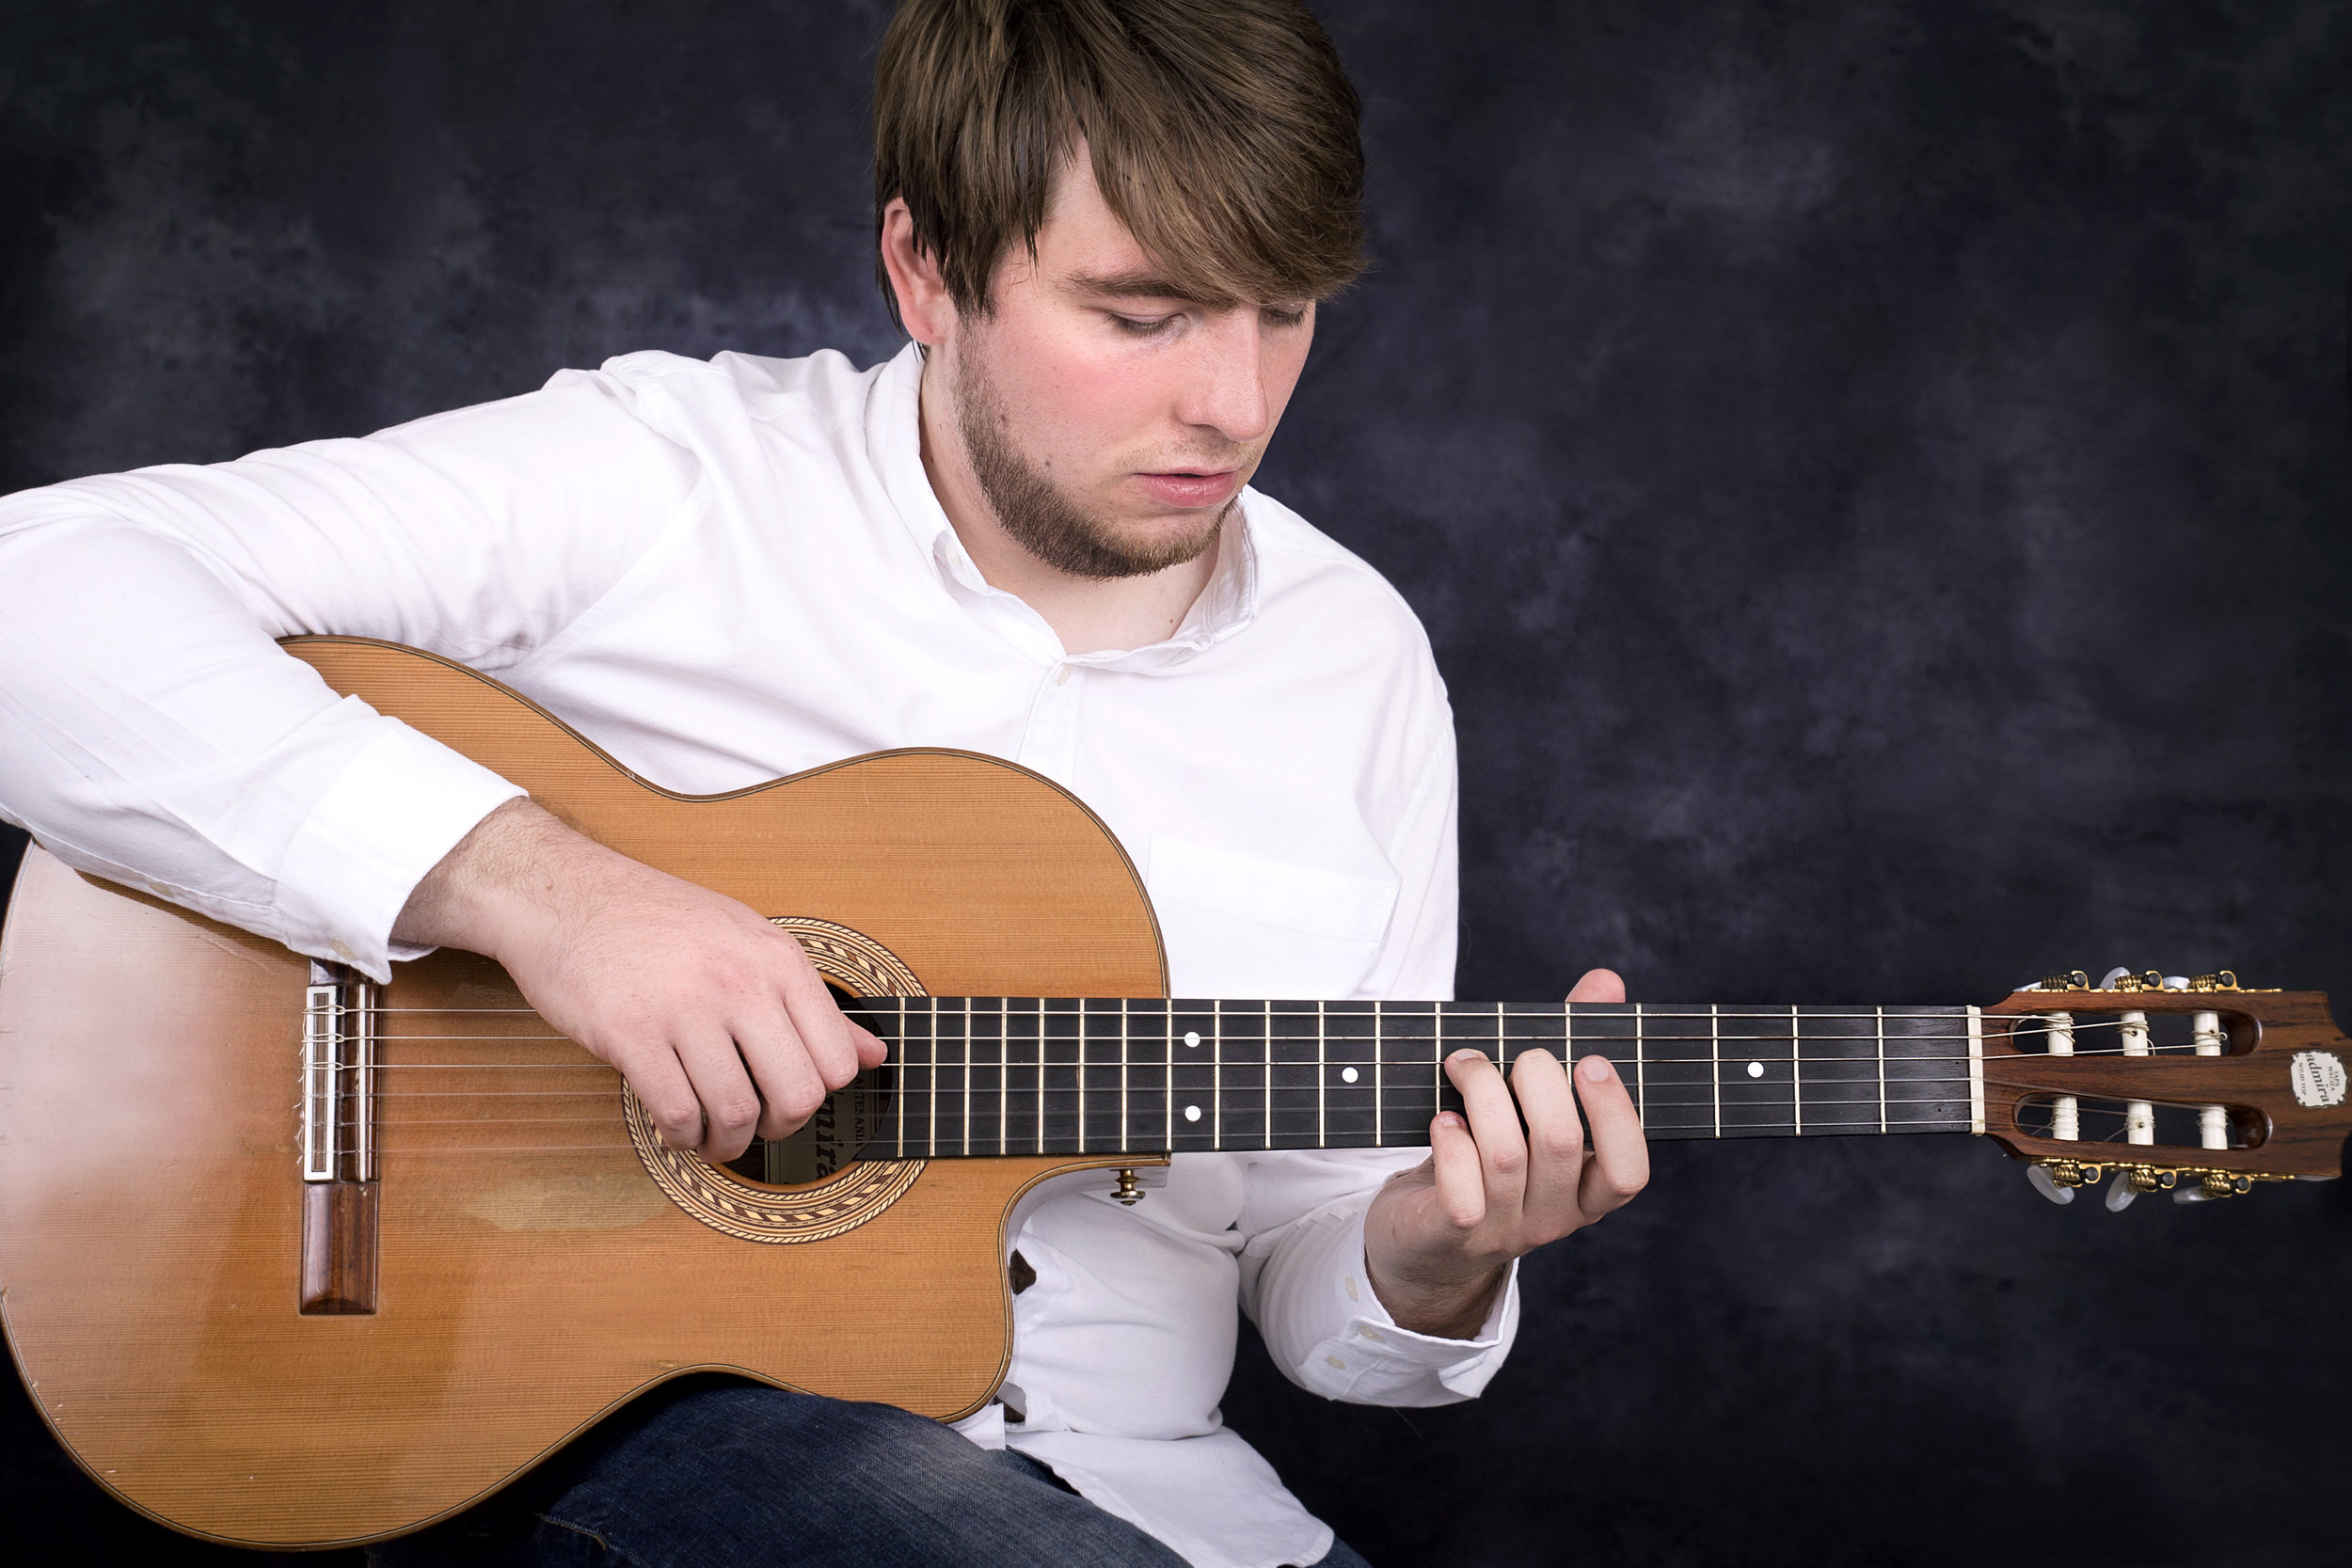 Oliver - Oliver graduated with a first-class degree in popular music at Leeds College of Music in 2014. As a teenager, he achieved Grade 8 Distinction in both Electric and Classical Guitar. Oliver performs with 'Fragile' (Yes Tribute Band), 'That Joe Payne' (best male vocalist voted by Prog Magazine) and works alongside composer John Holden on collaborative music with respected Progressive Rock musicians.